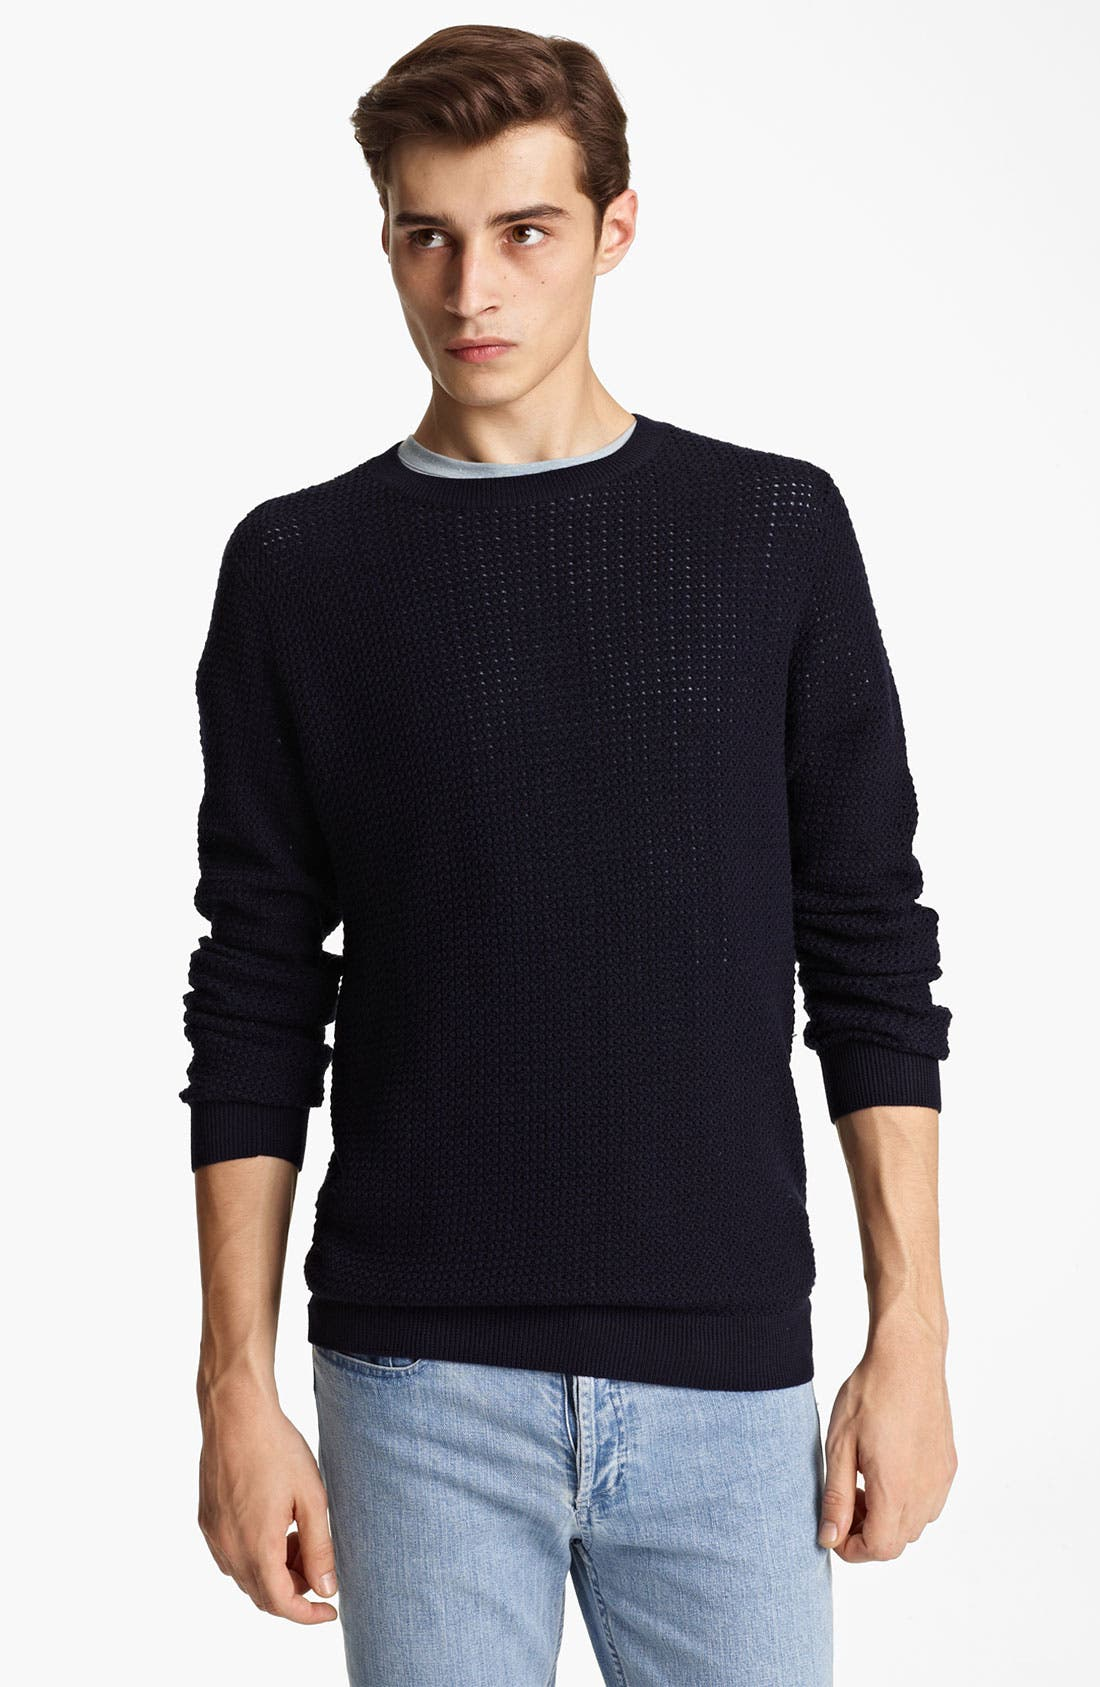 Main Image - A.P.C. Perforated Crewneck Sweater